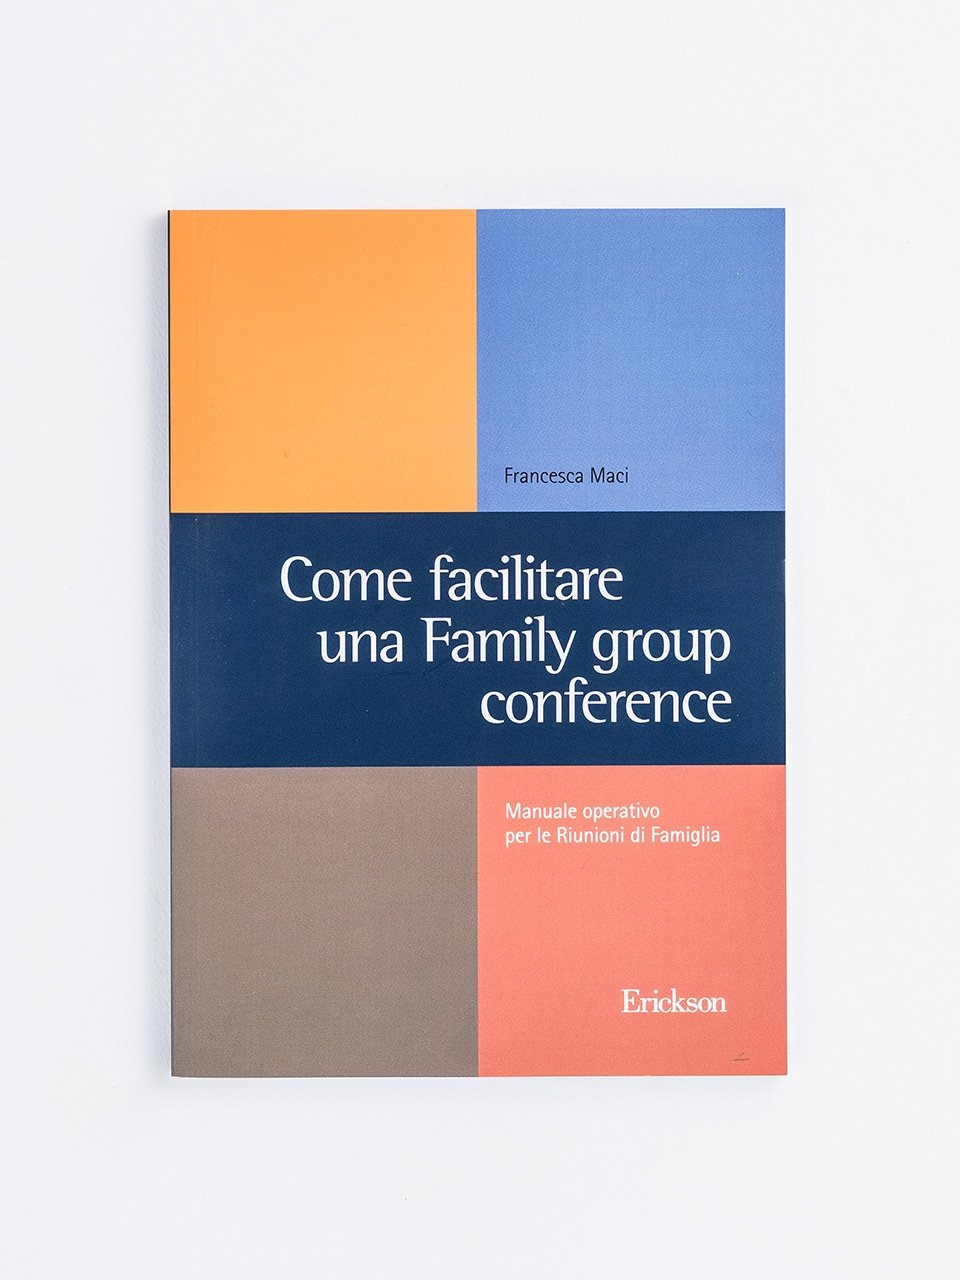 Come facilitare una Family group conference - Costruire la resilienza - Libri - Erickson